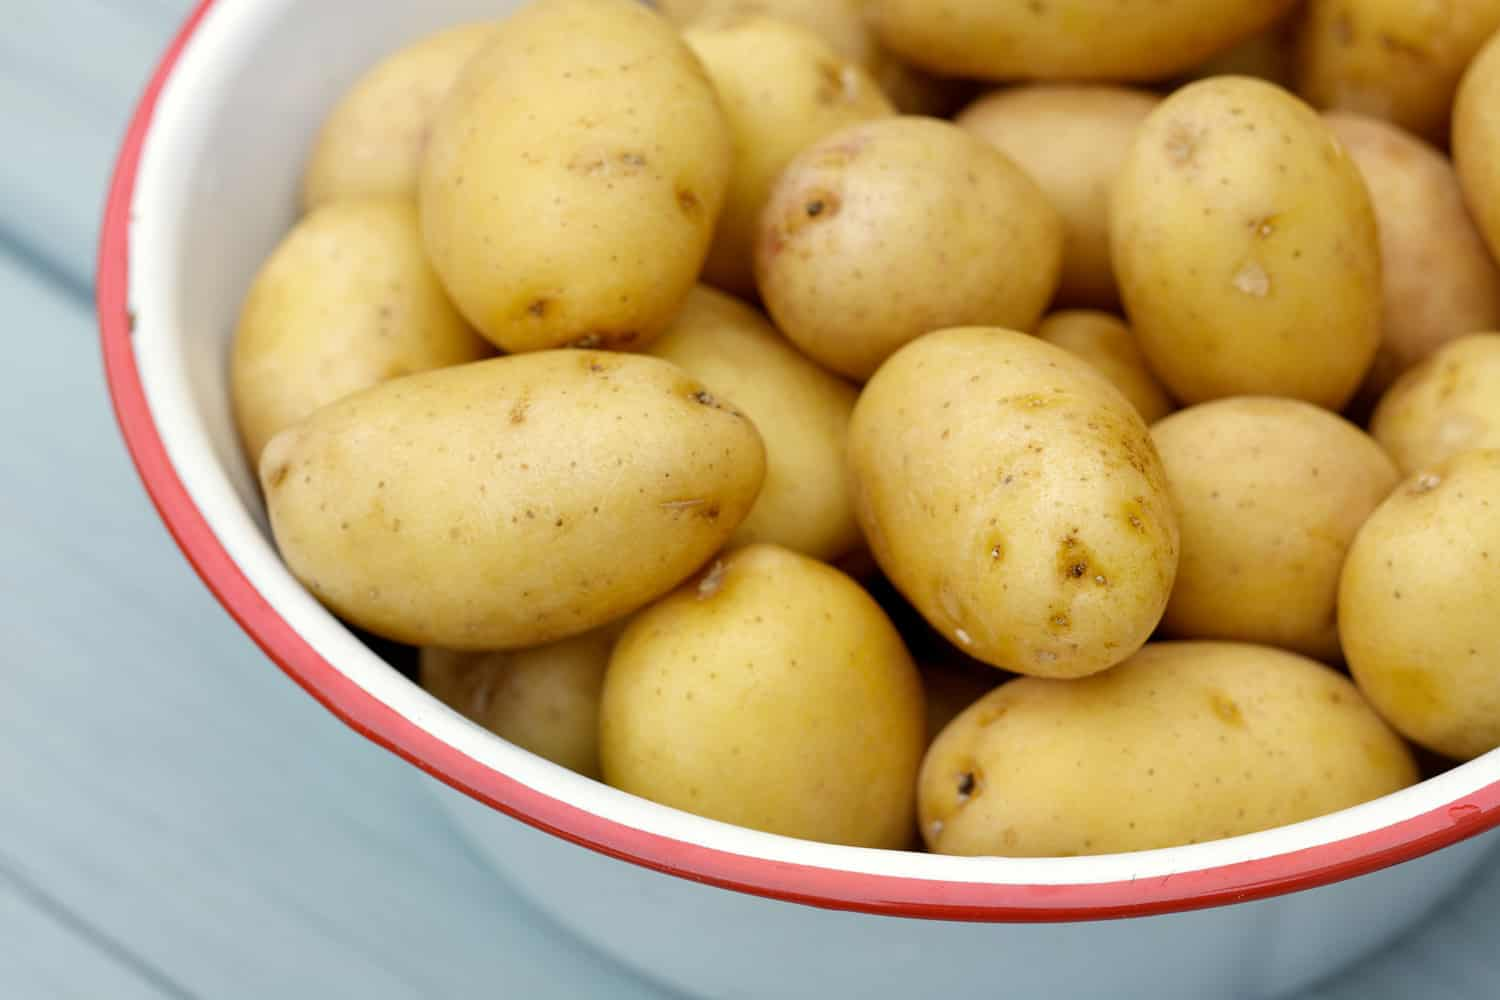 Natural light photo of raw small potatoes in metal bowl on wood table